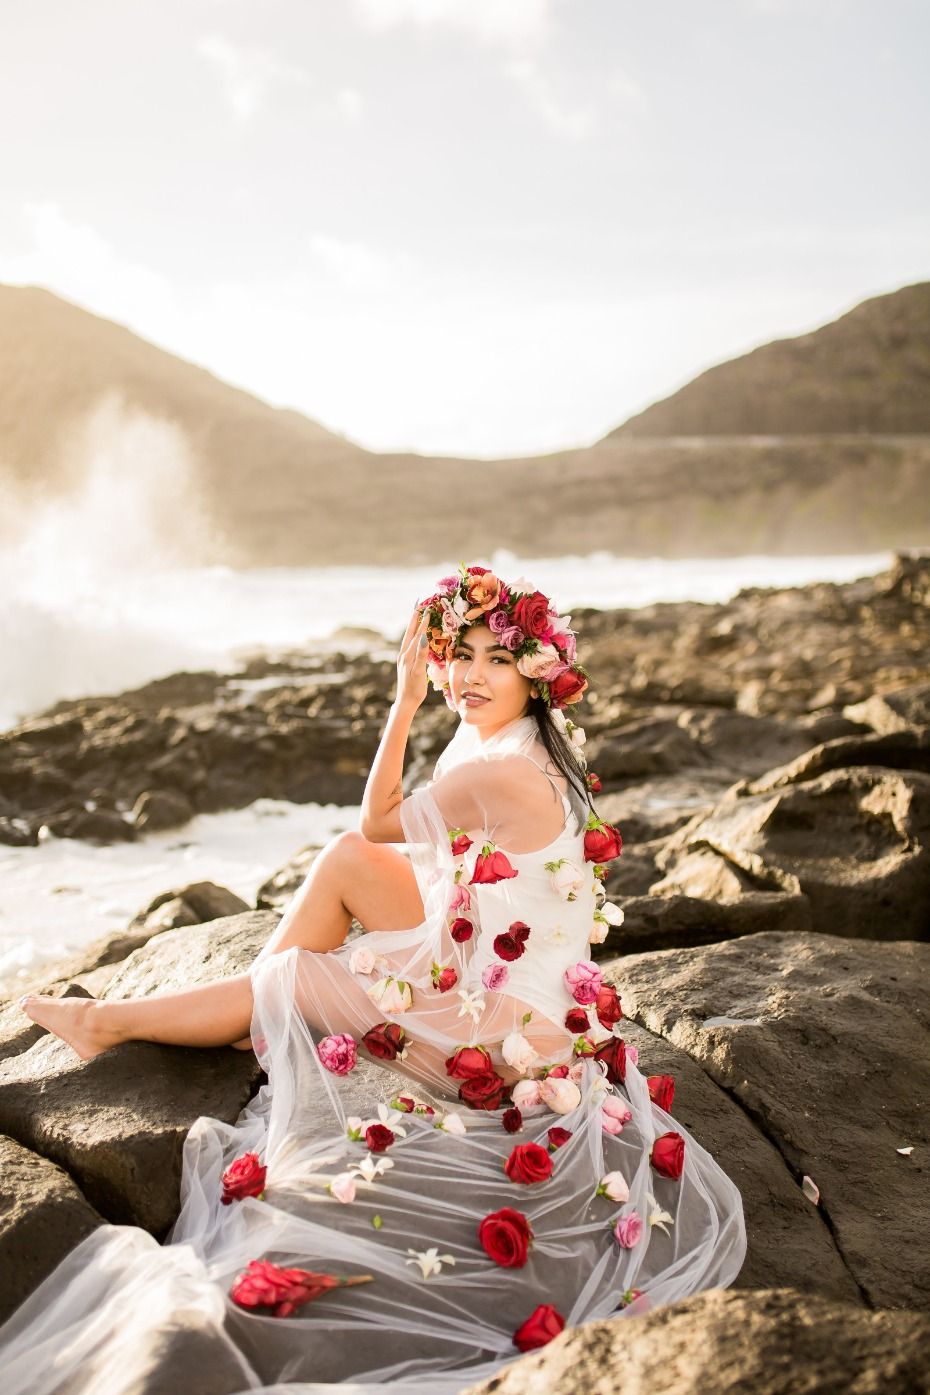 Dreamy bridal portrait session in Hawaii